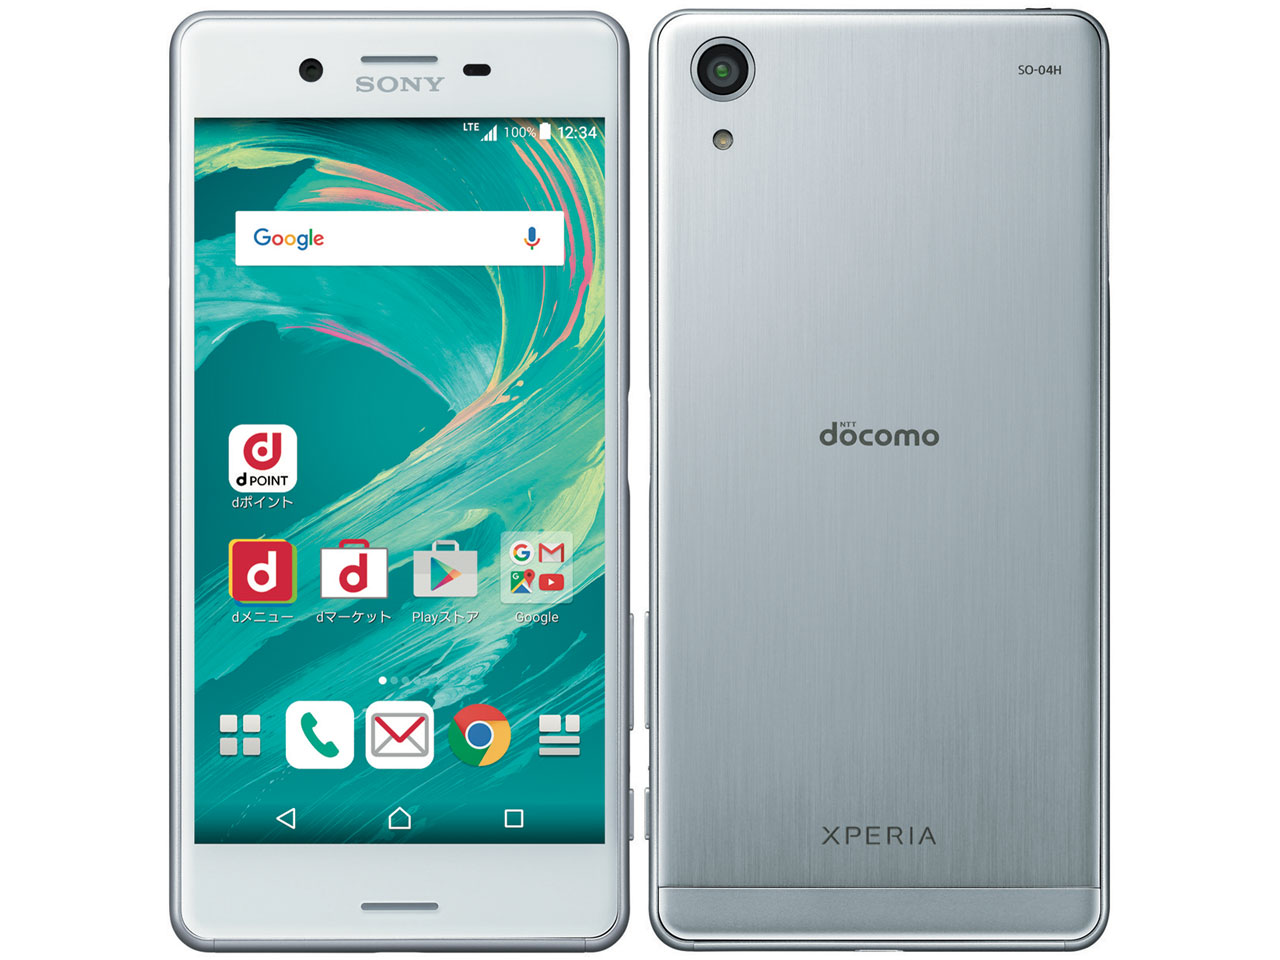 05a82f5db4 docomo SONY Xperia X Performance SO-04H の修理ページ - スマホ ...